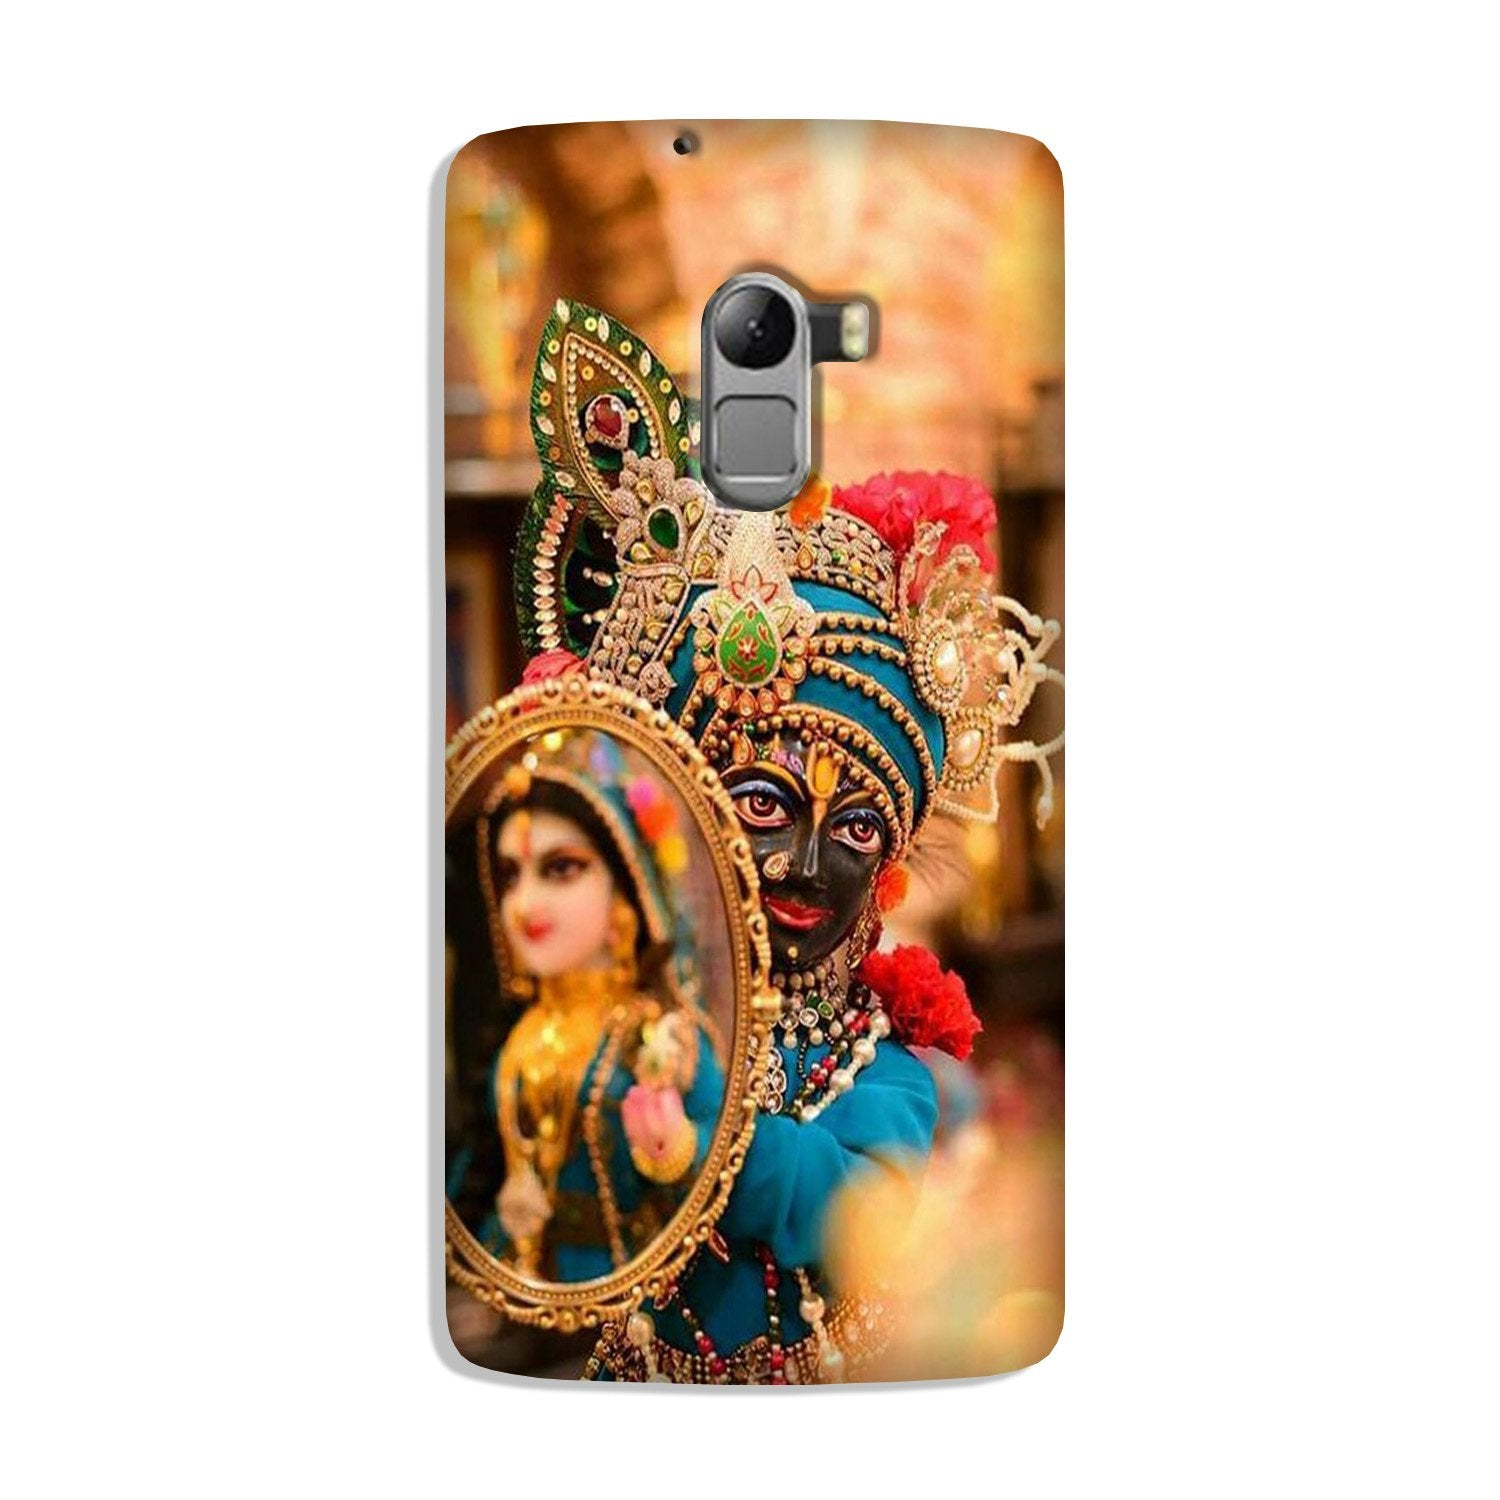 Lord Krishna5 Case for Lenovo K4 Note